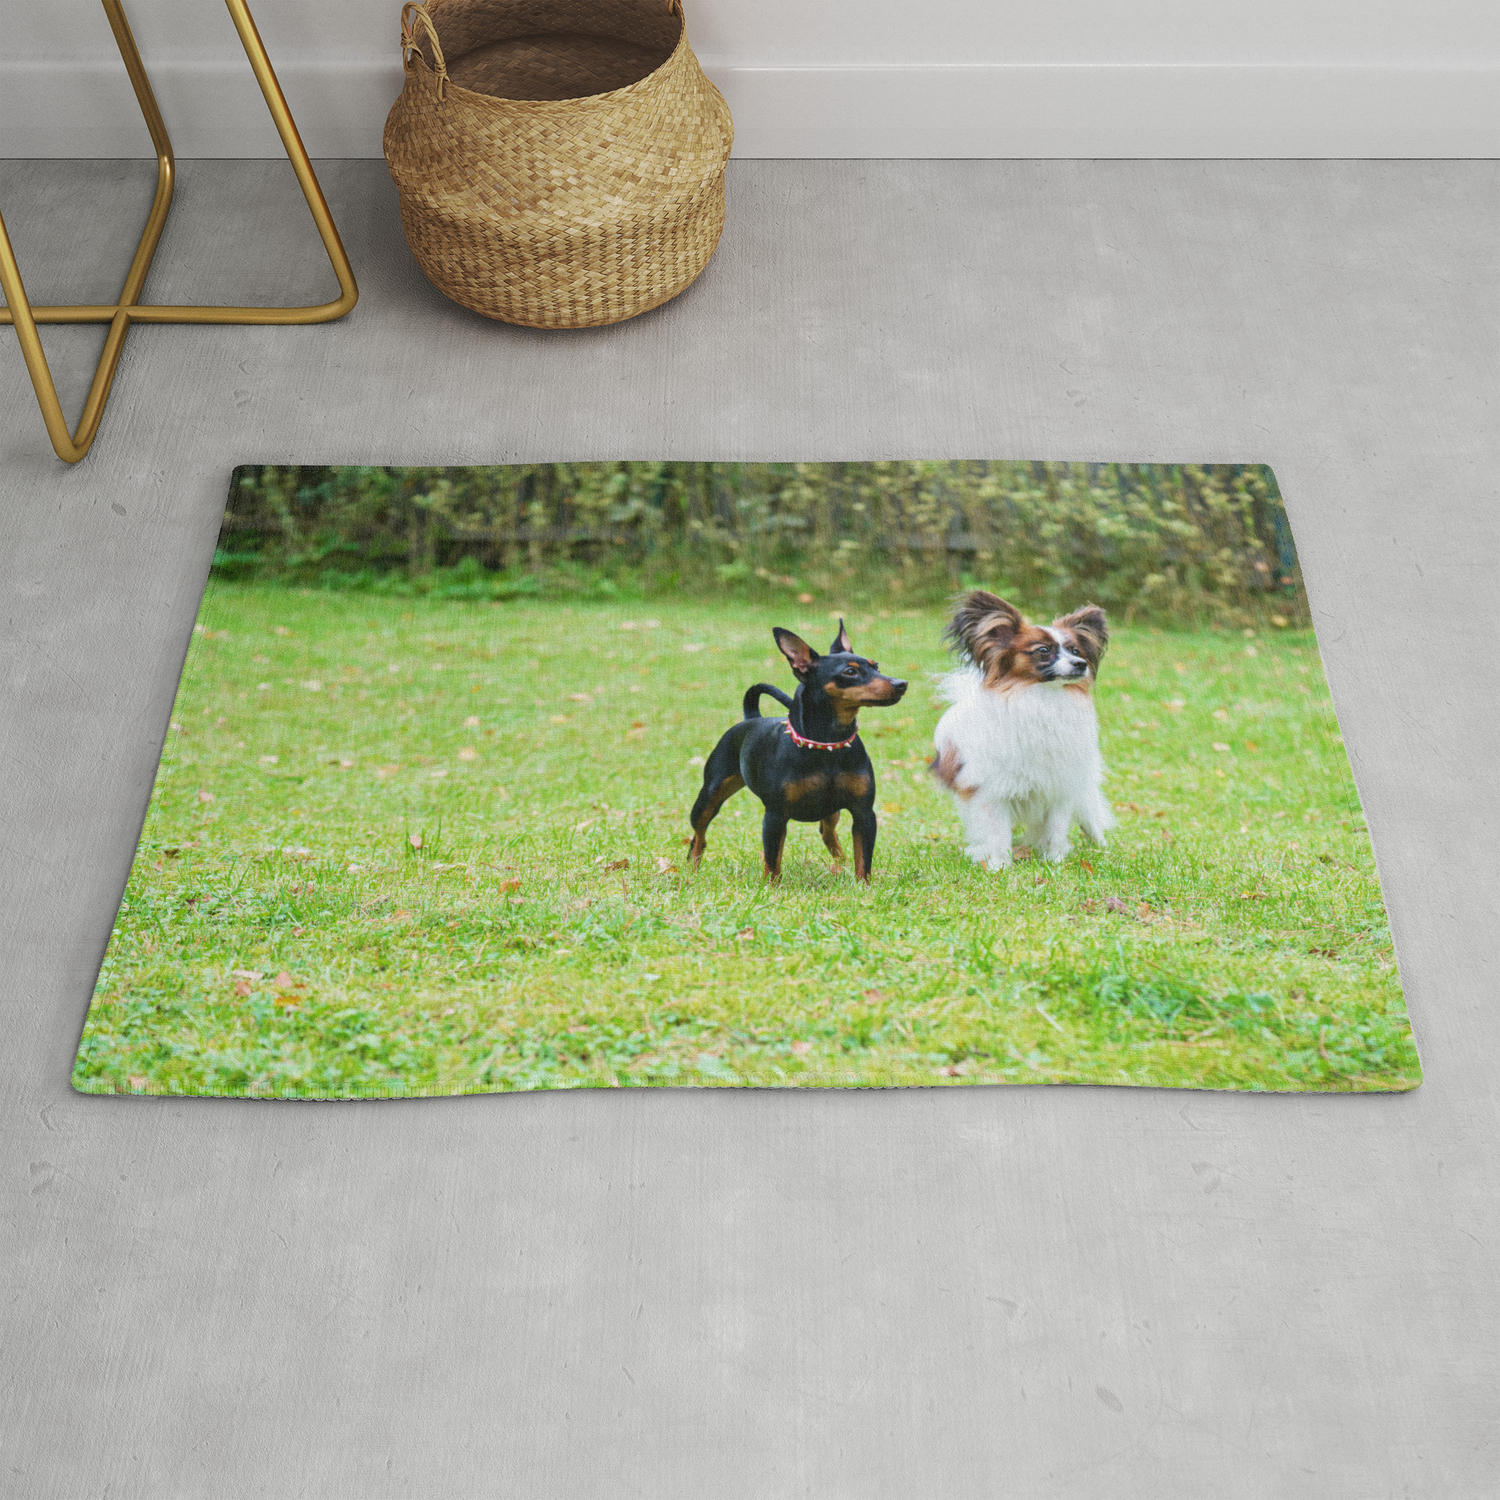 Outdoor Portrait Of A Miniature Pinscher And Papillon Purebreed Dogs On The Grass Rug By Anytka